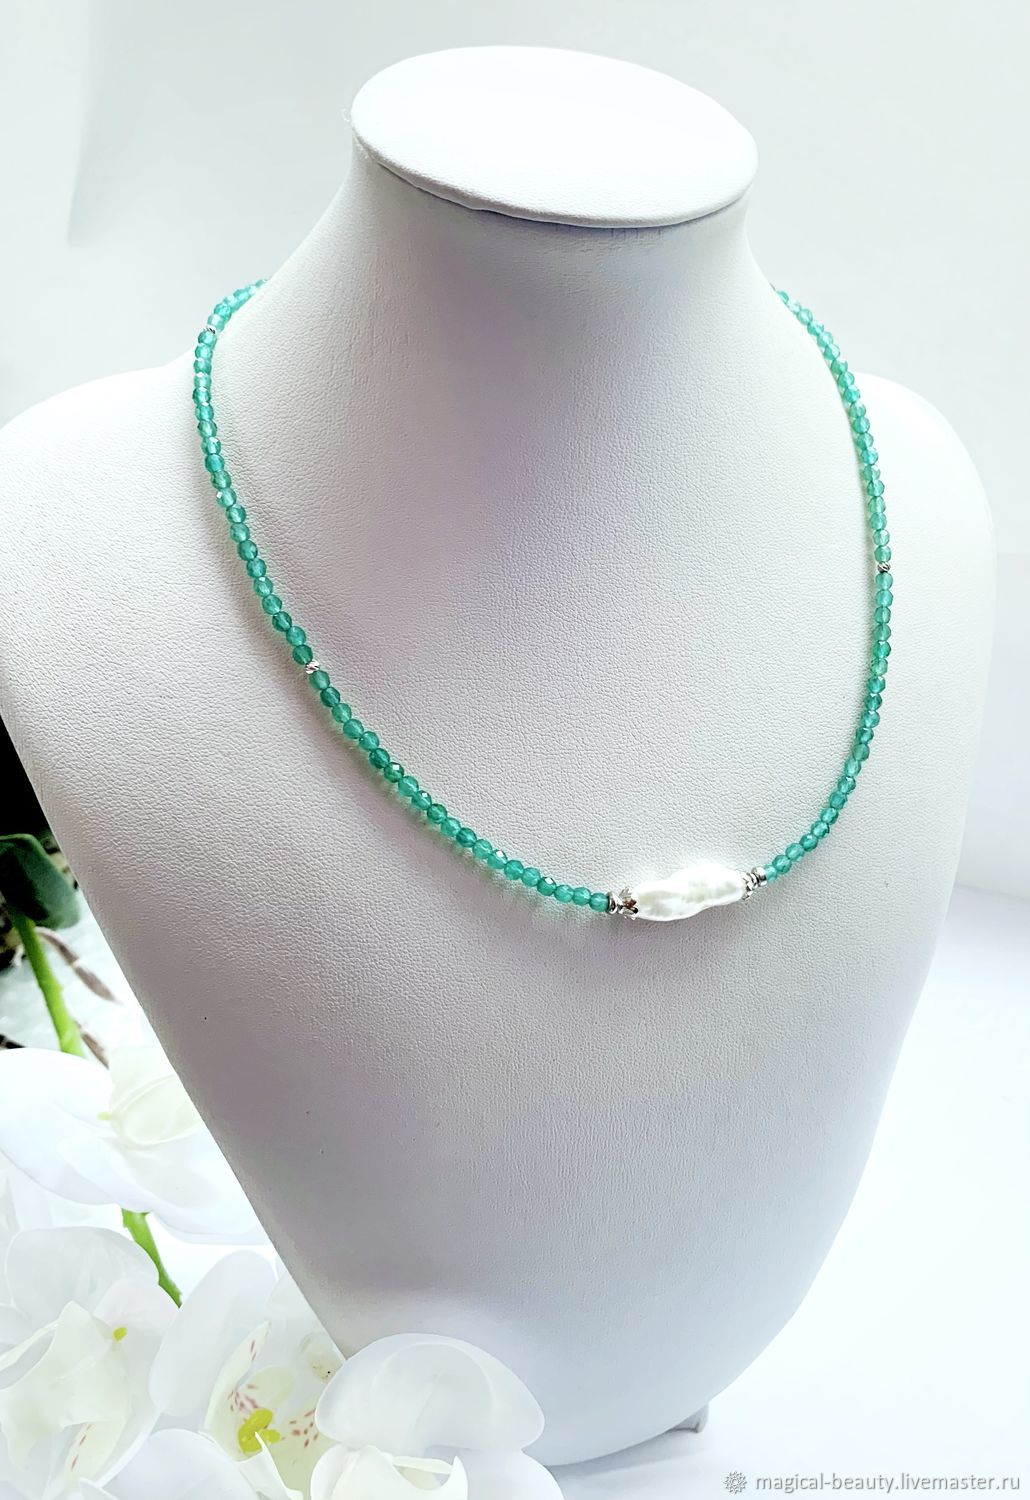 Choker with chrysoprase and natural pearls, Necklace, Moscow,  Фото №1